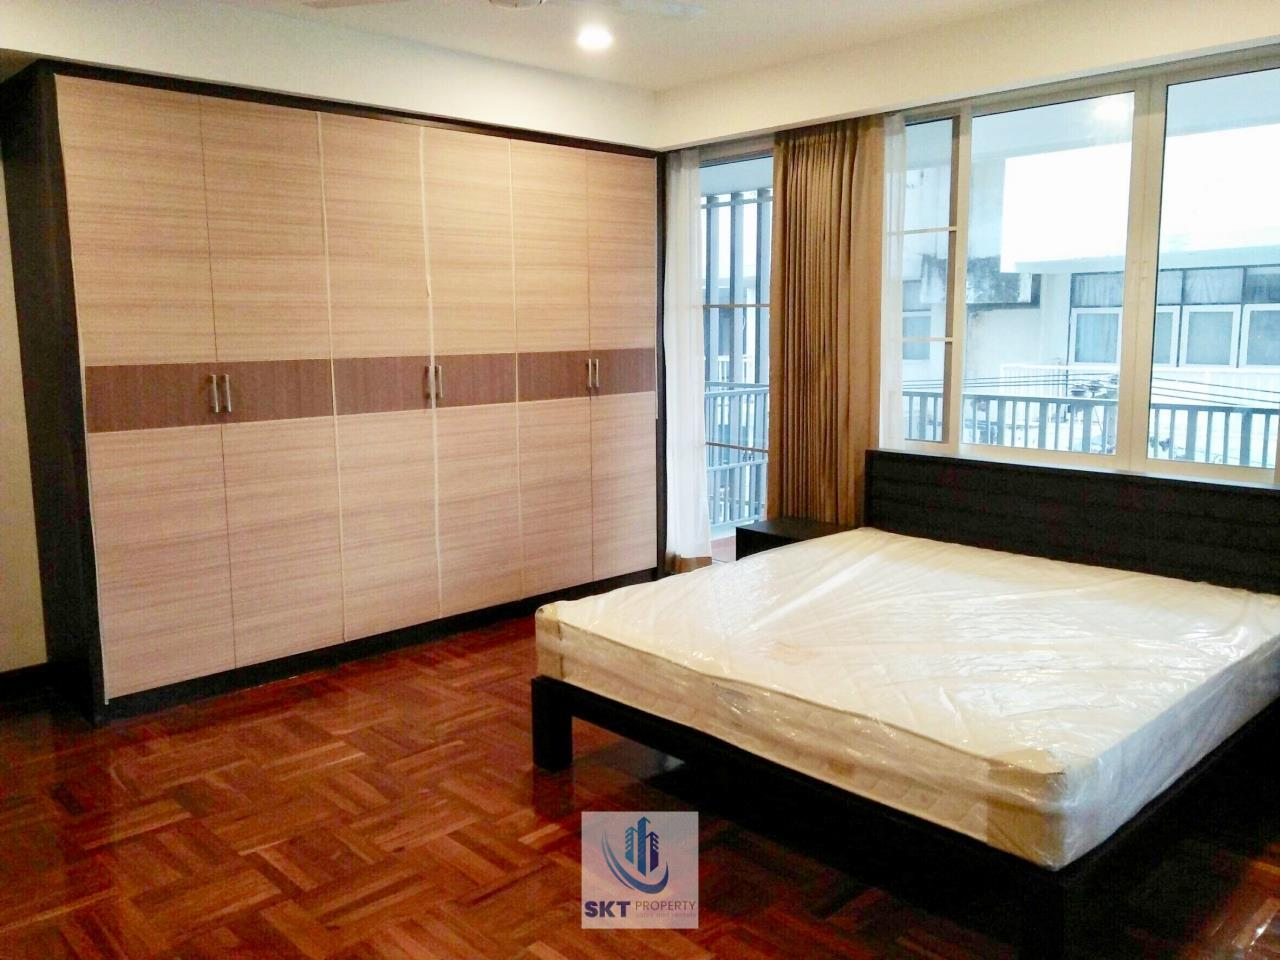 Sukritta Property Agency's For Rent PET FRIENDLY APARTMENT Villa Insaf Near Bts Nana 8